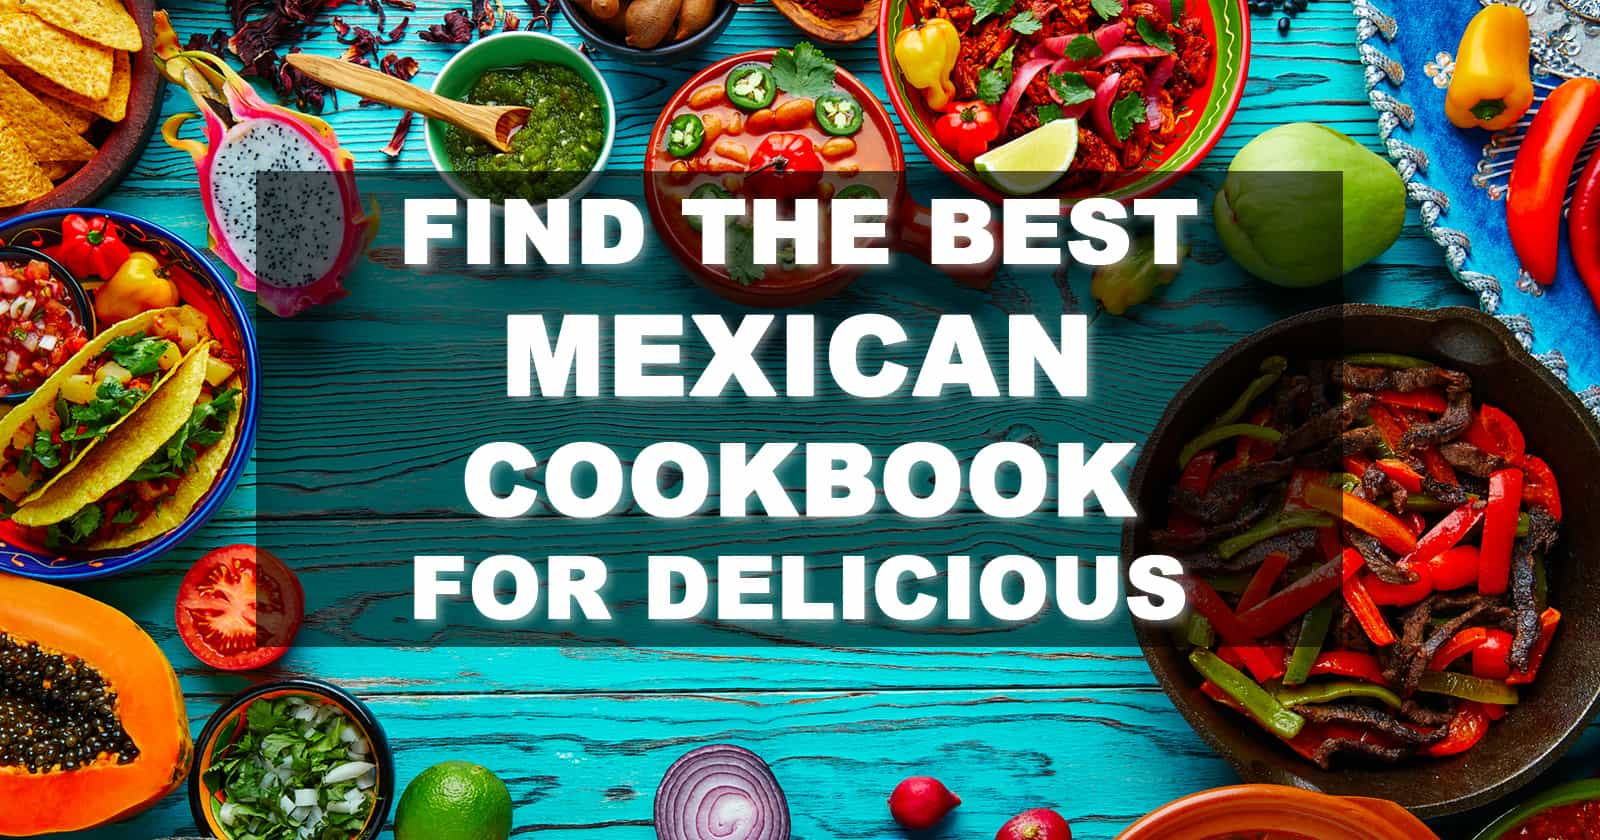 Best Mexican Cookbook for Delicious